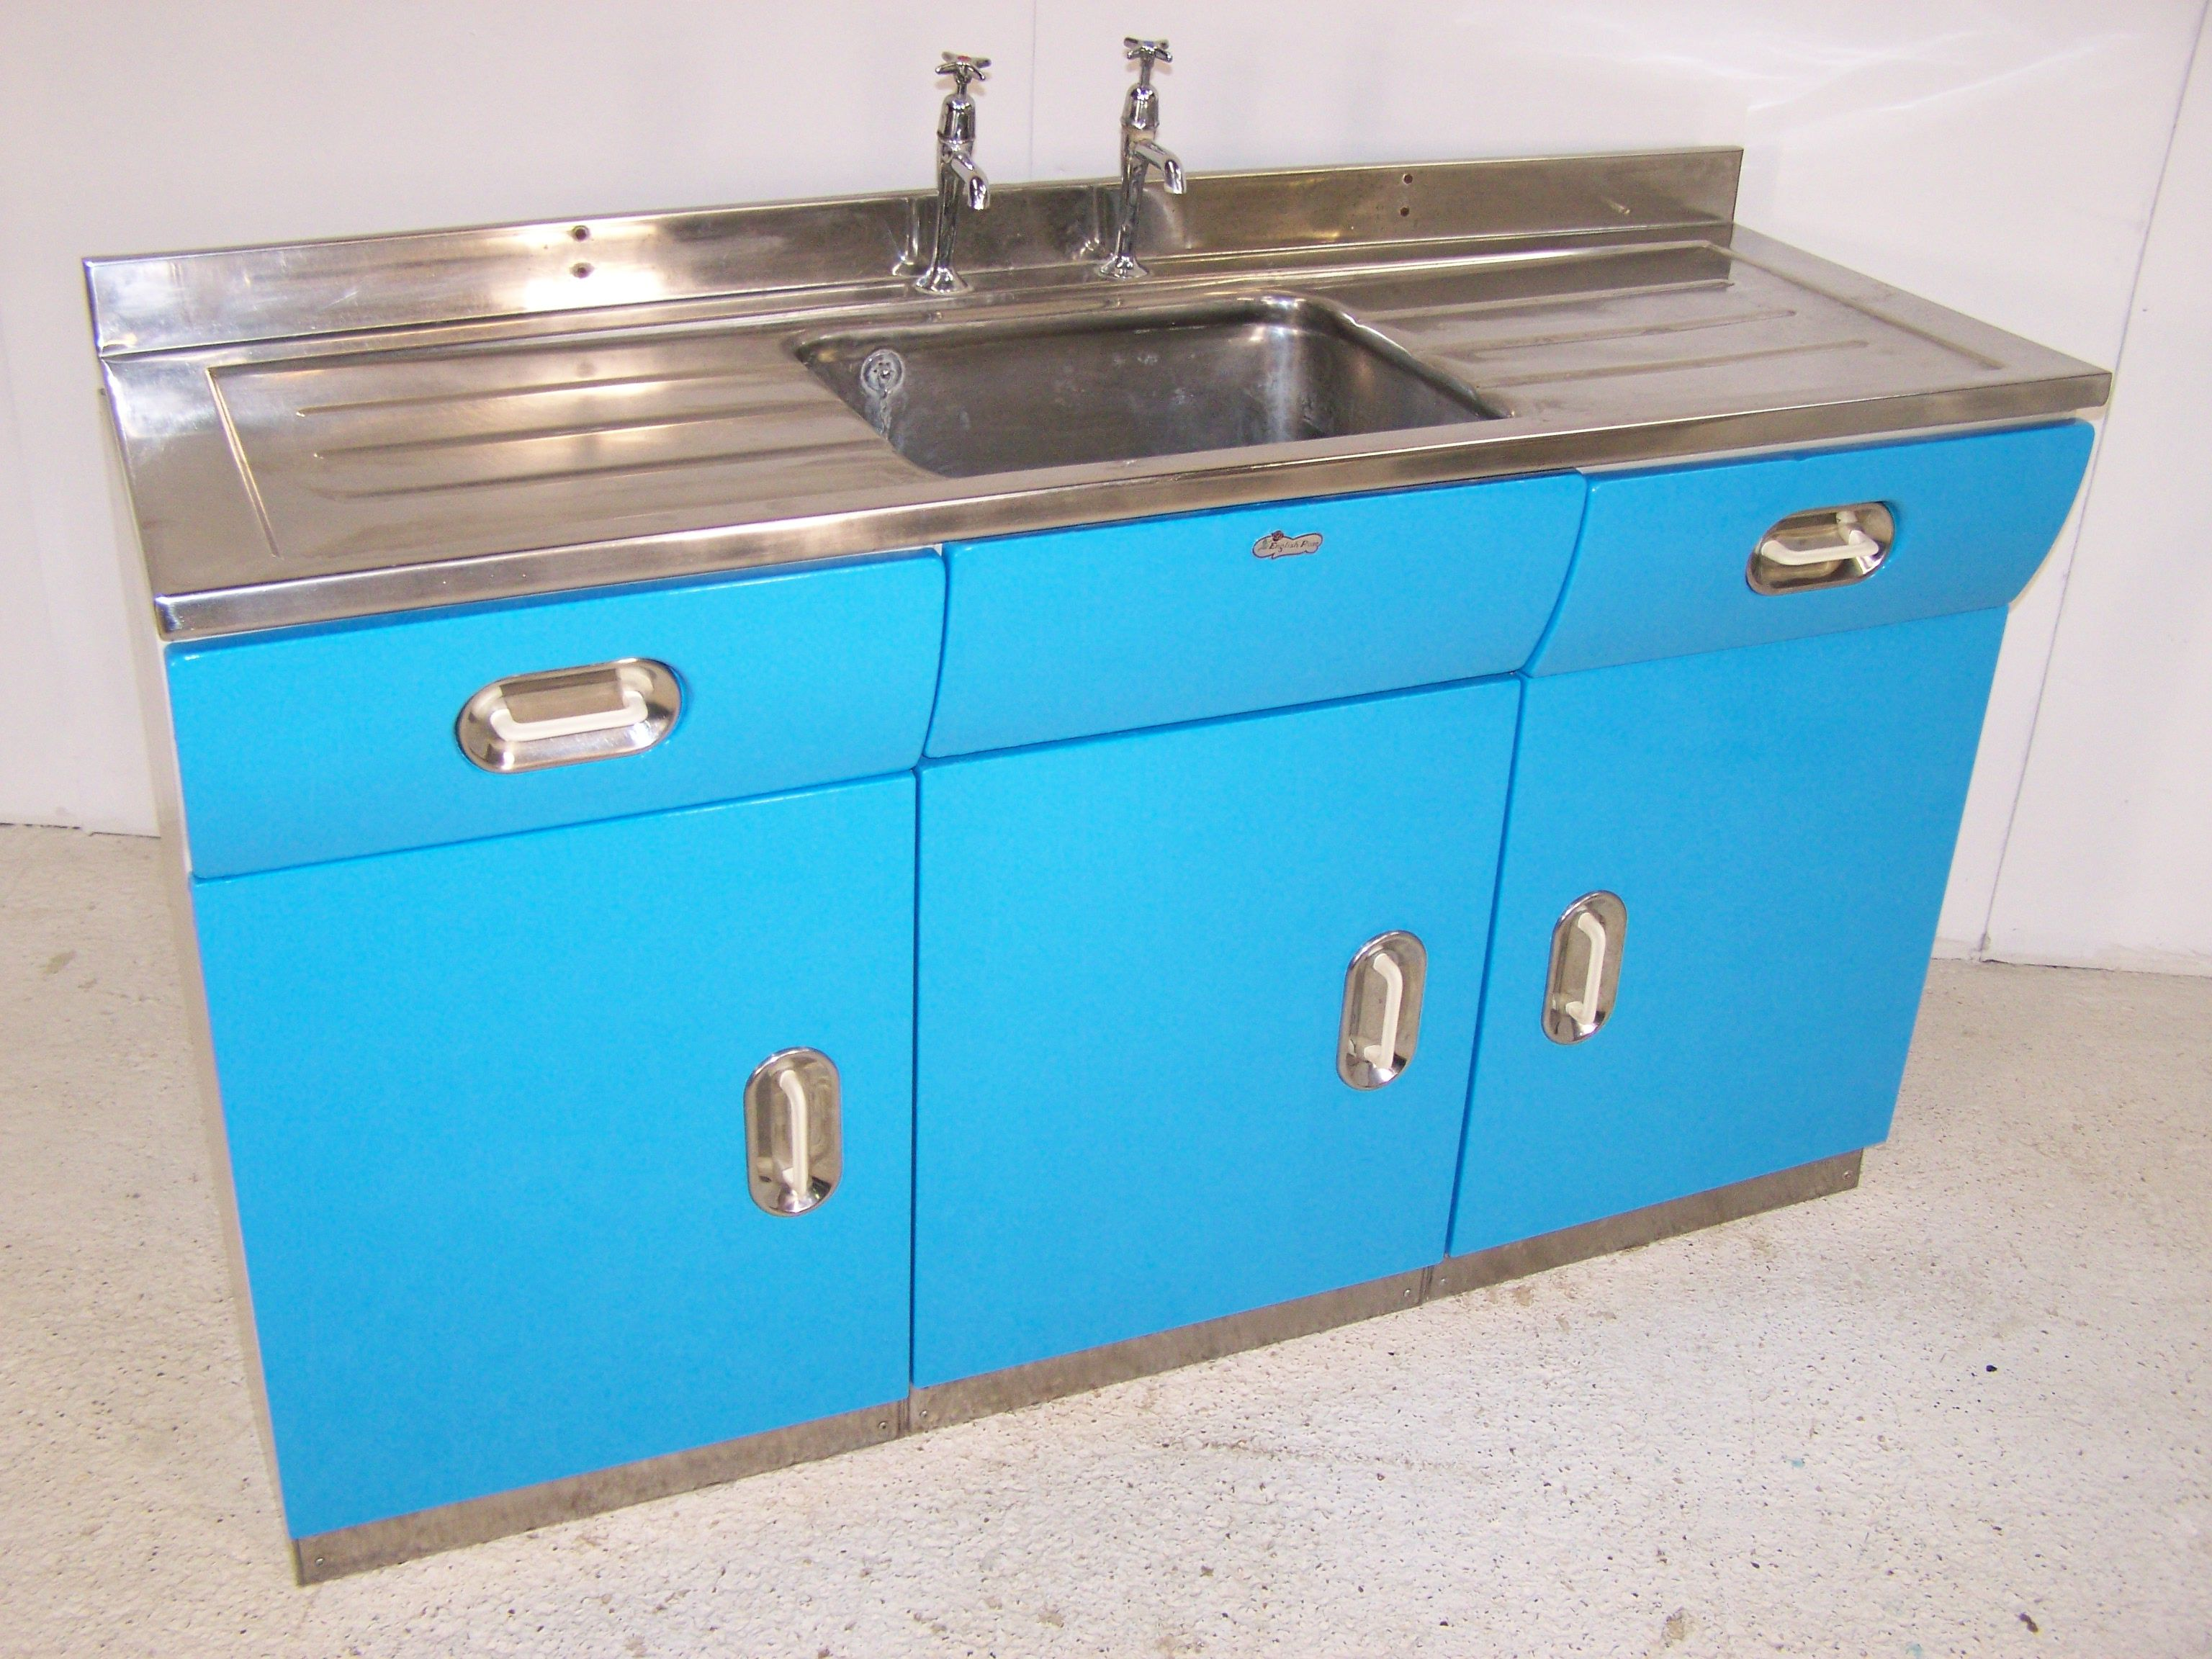 Blue Kitchen Sinks - Home & Furniture Design - Kitchenagenda.com